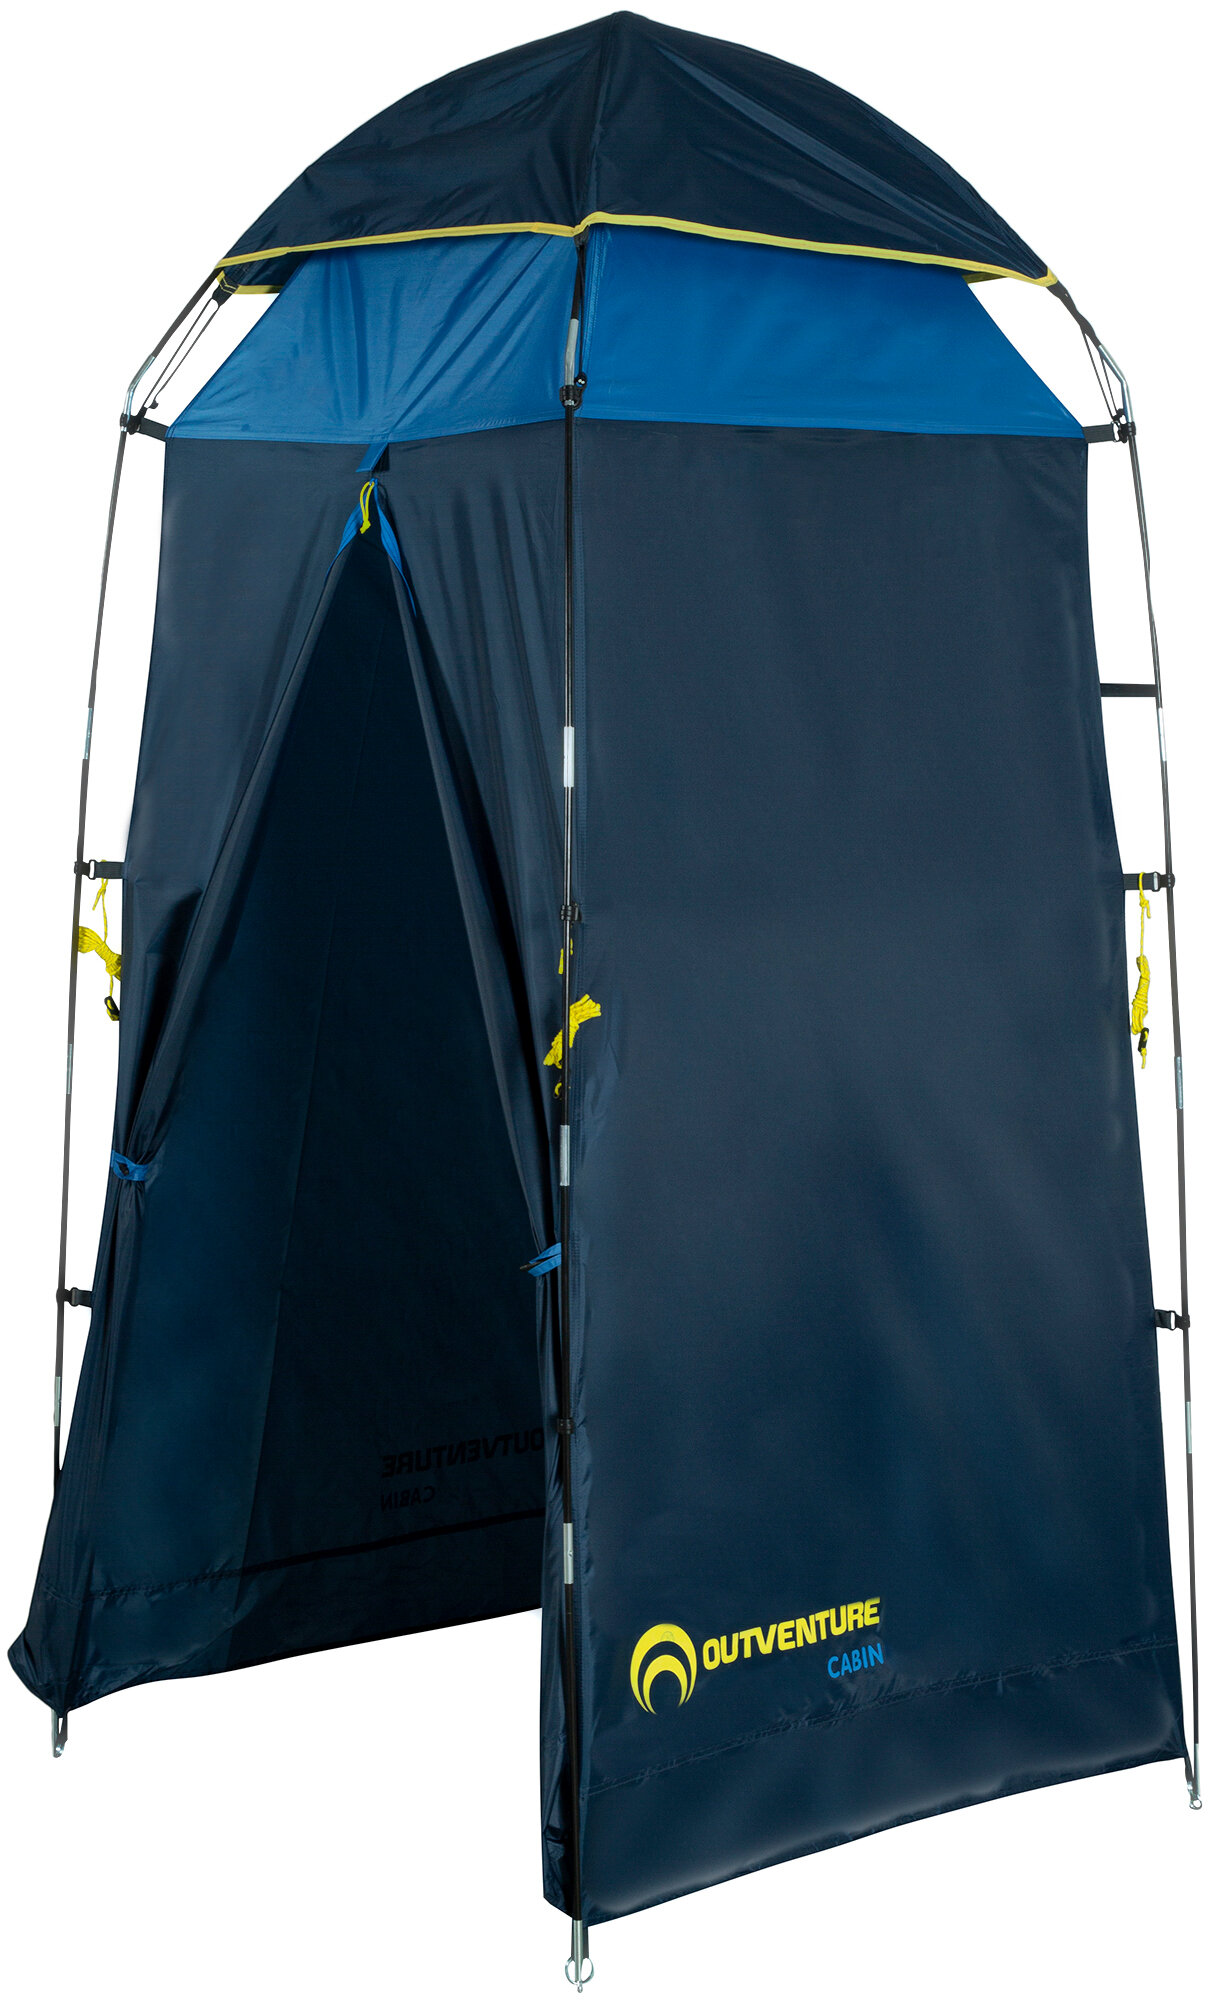 Тент Outventure Cabin sanitary tent